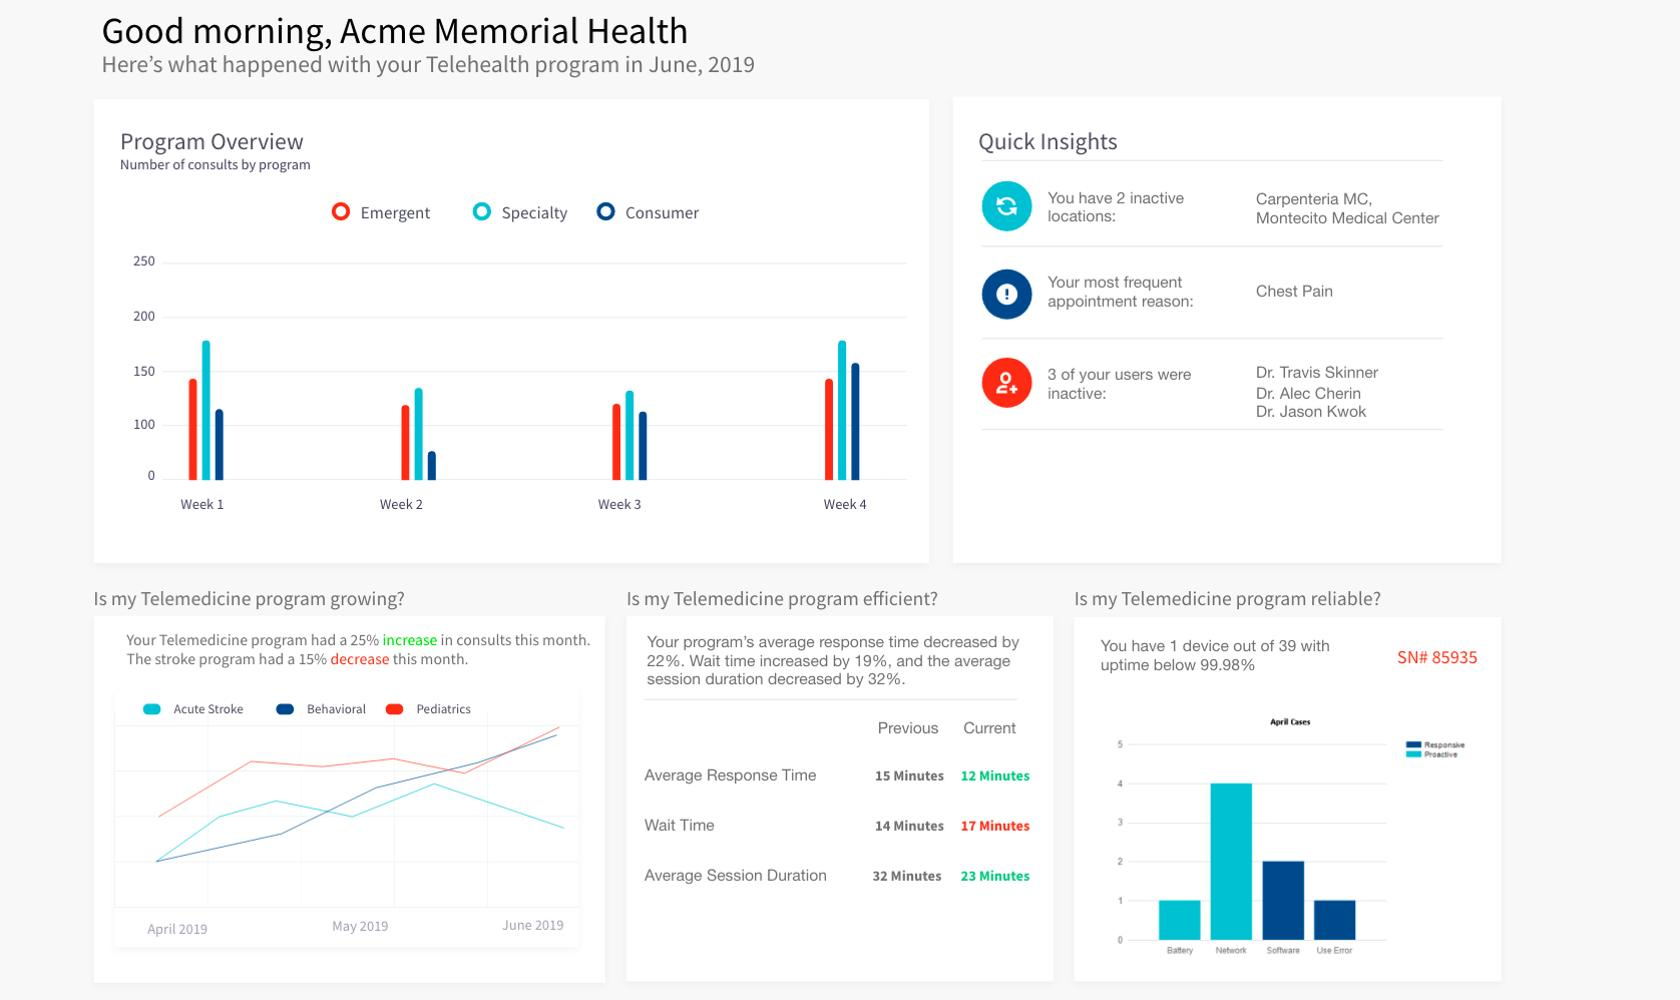 Dashboard design best practice with well laid out silos of information and good information flow